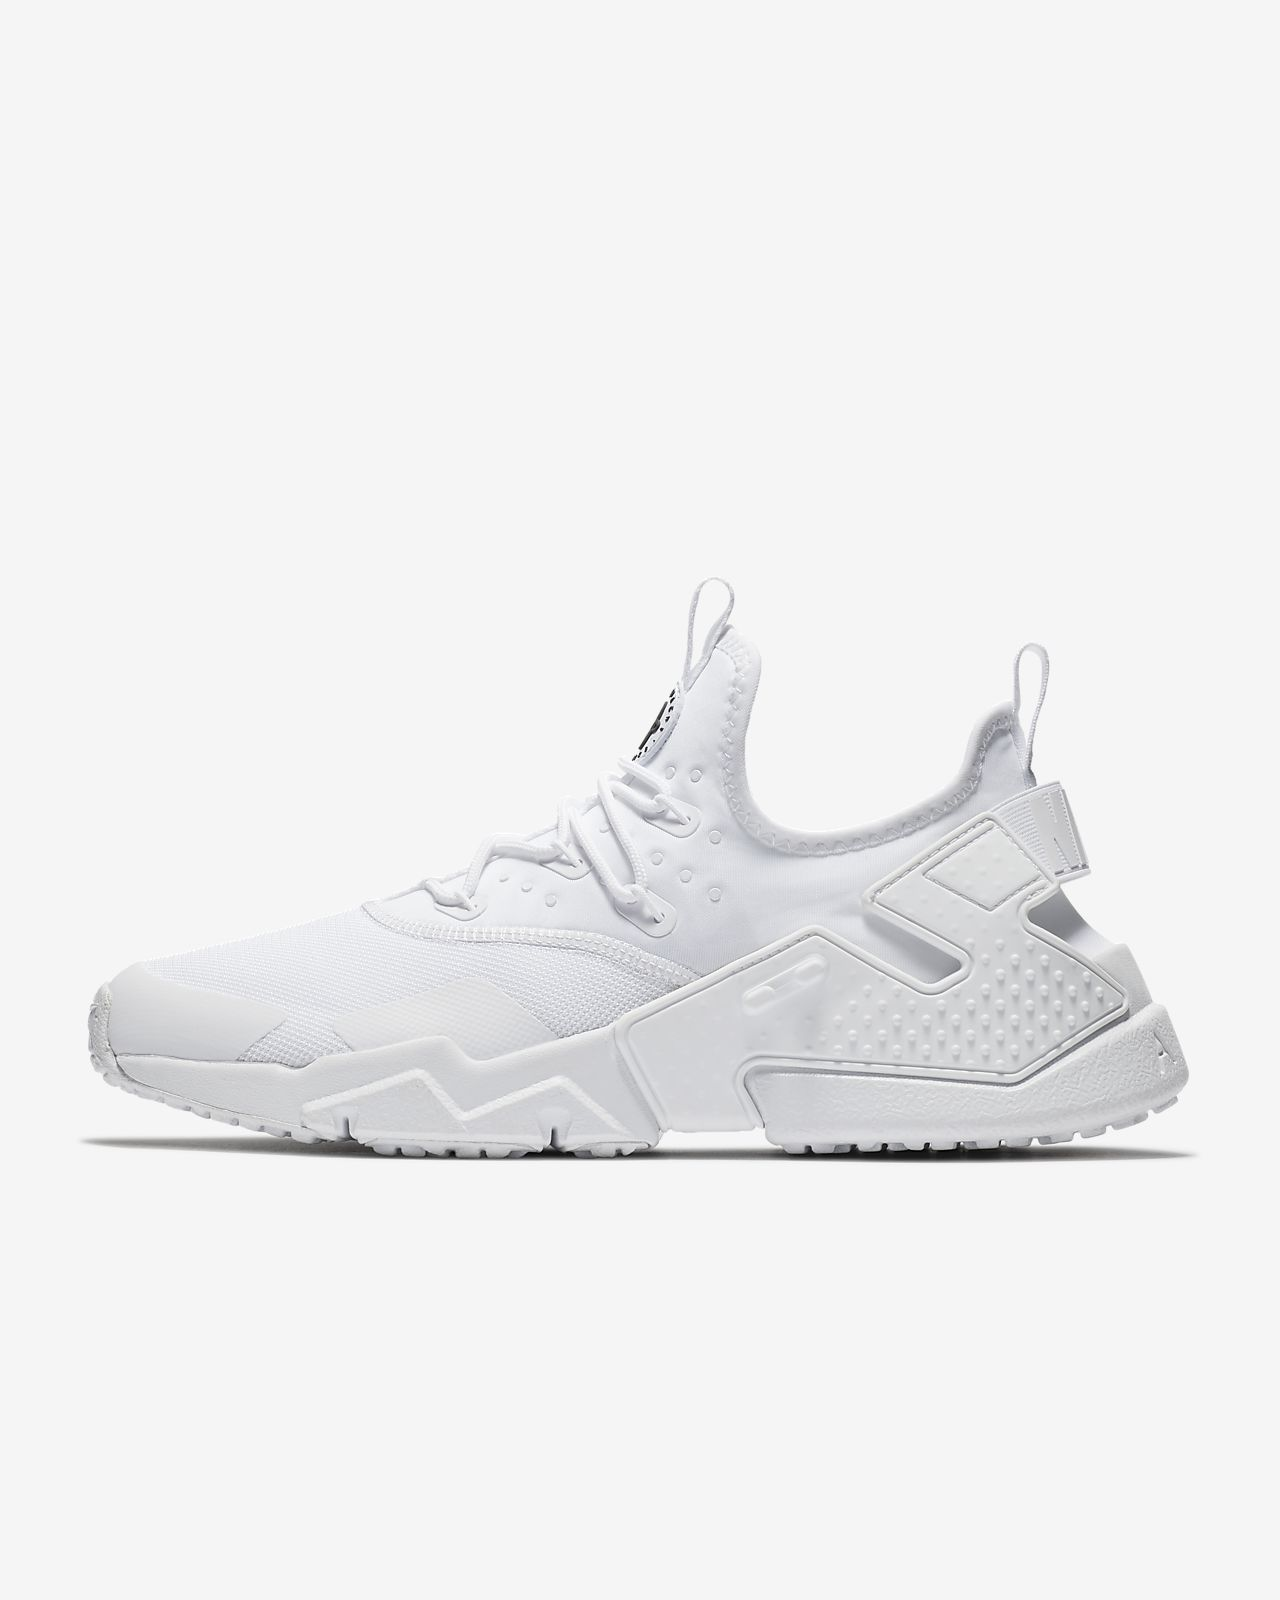 3a407042af1e9 Nike Air Huarache Drift Men s Shoe. Nike.com